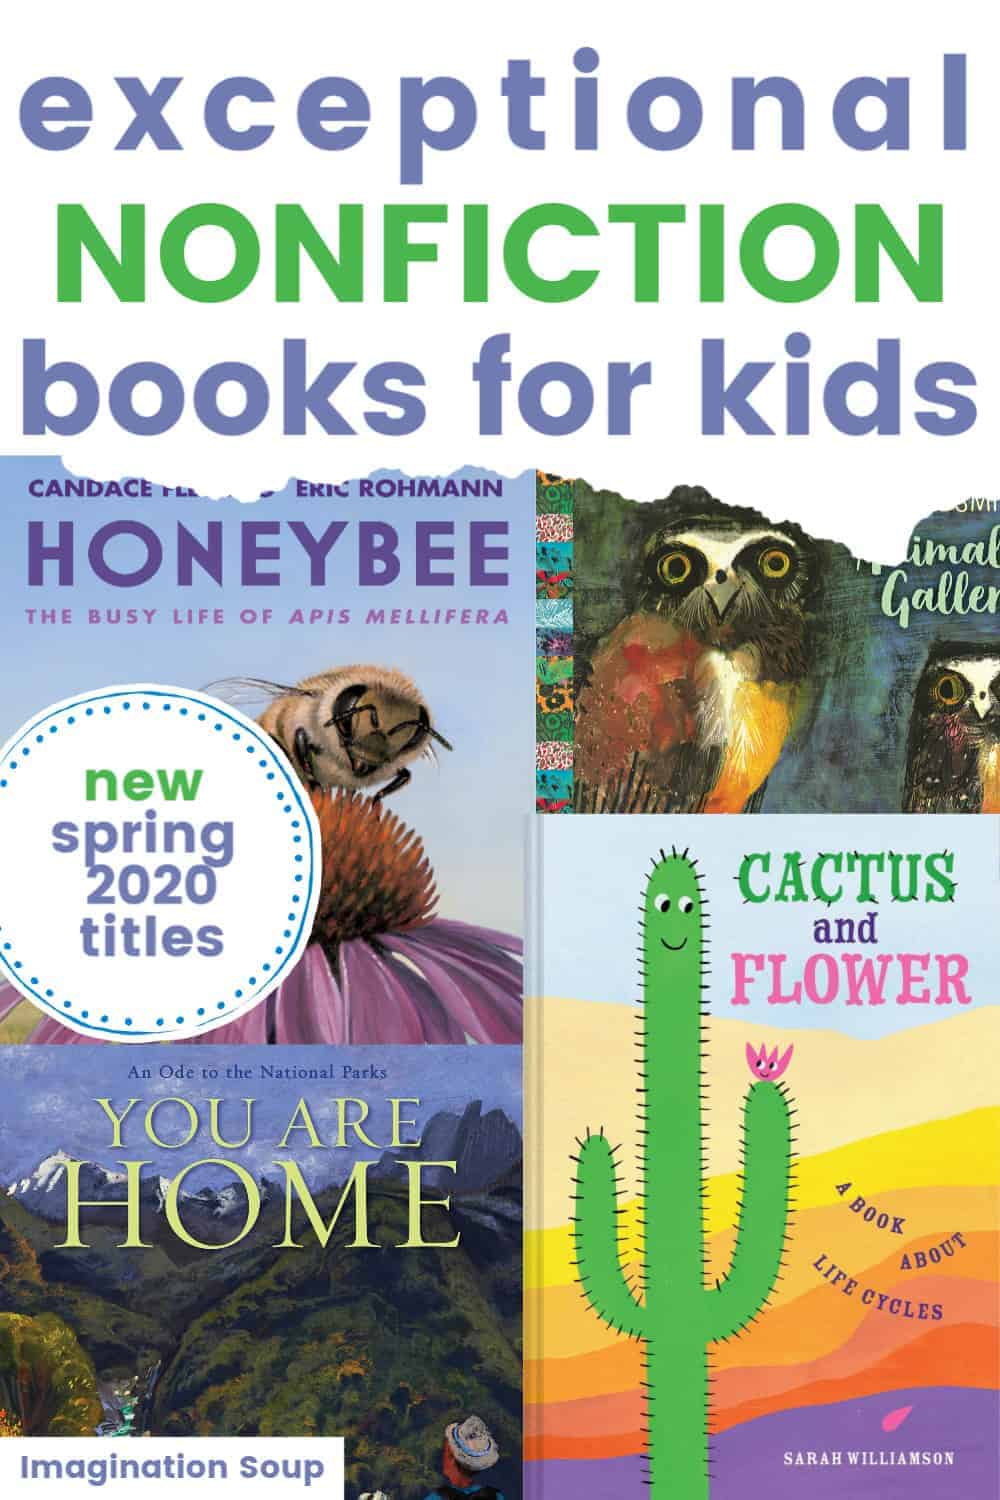 exceptional nonfiction books for kids spring 2020